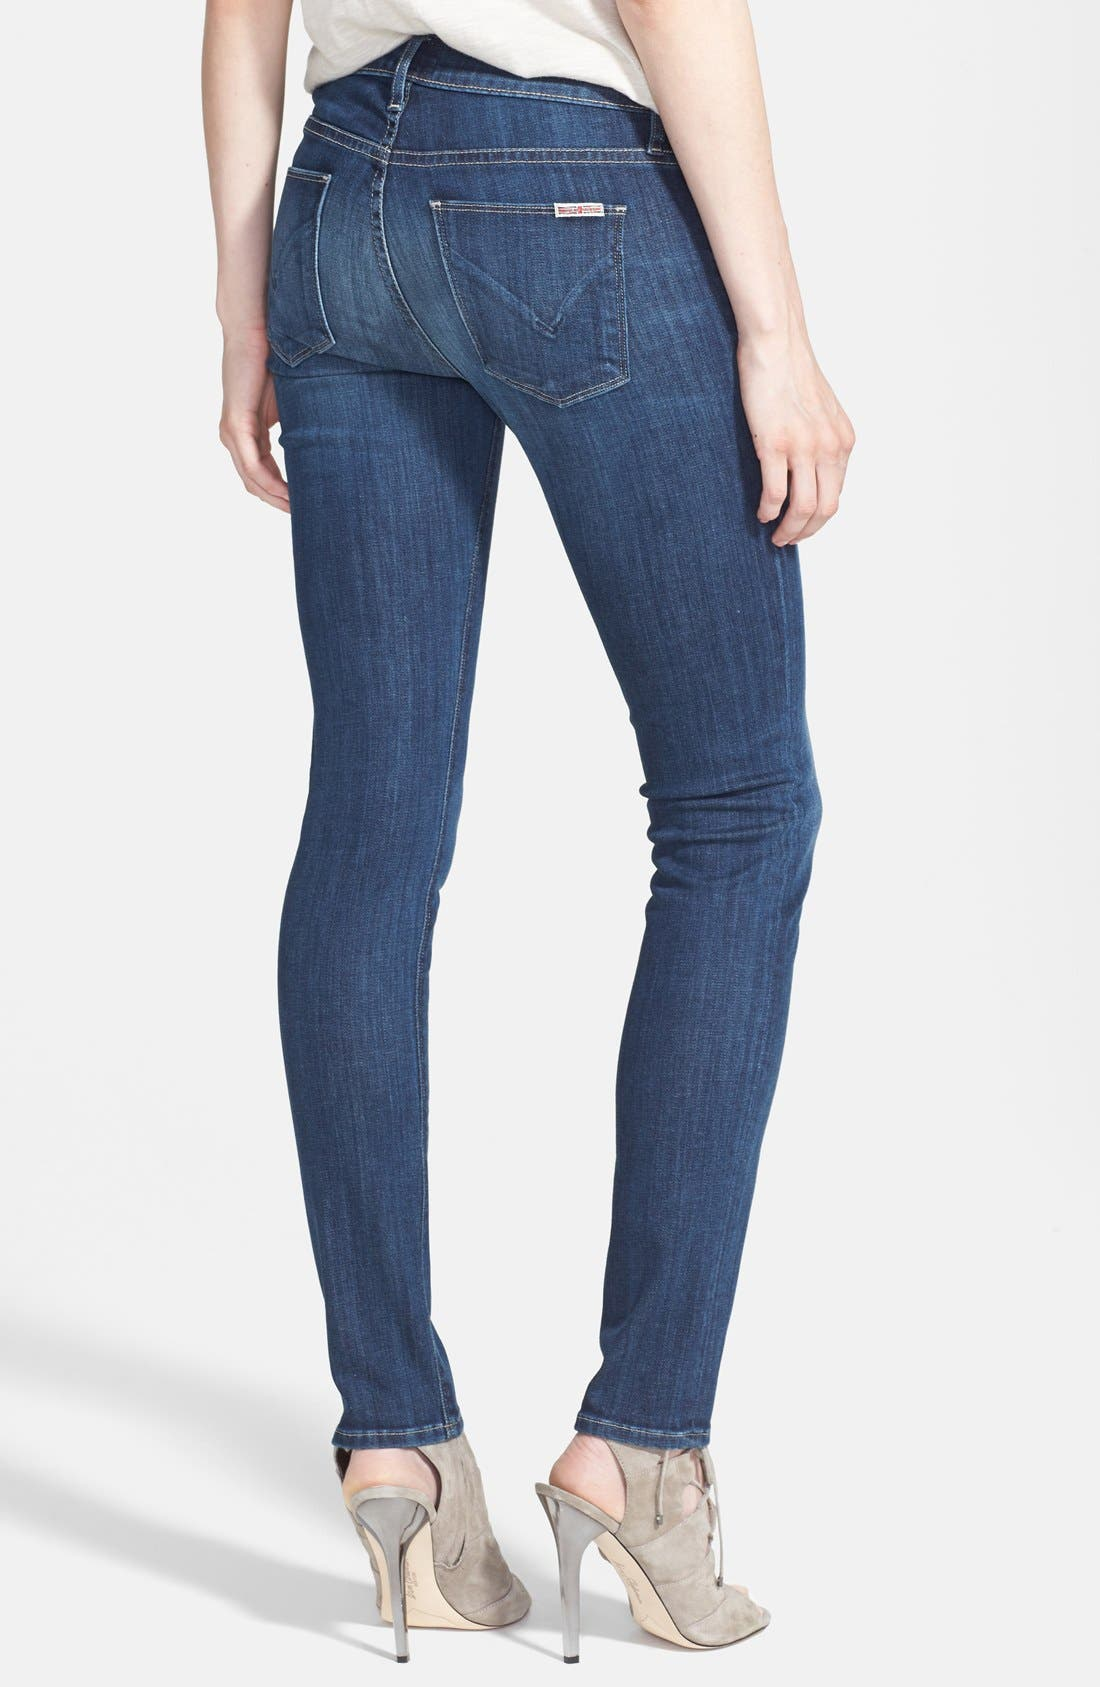 Alternate Image 2  - Hudson Jeans 'Collette' Skinny Jeans (Cascade) (Nordstrom Exclusive)